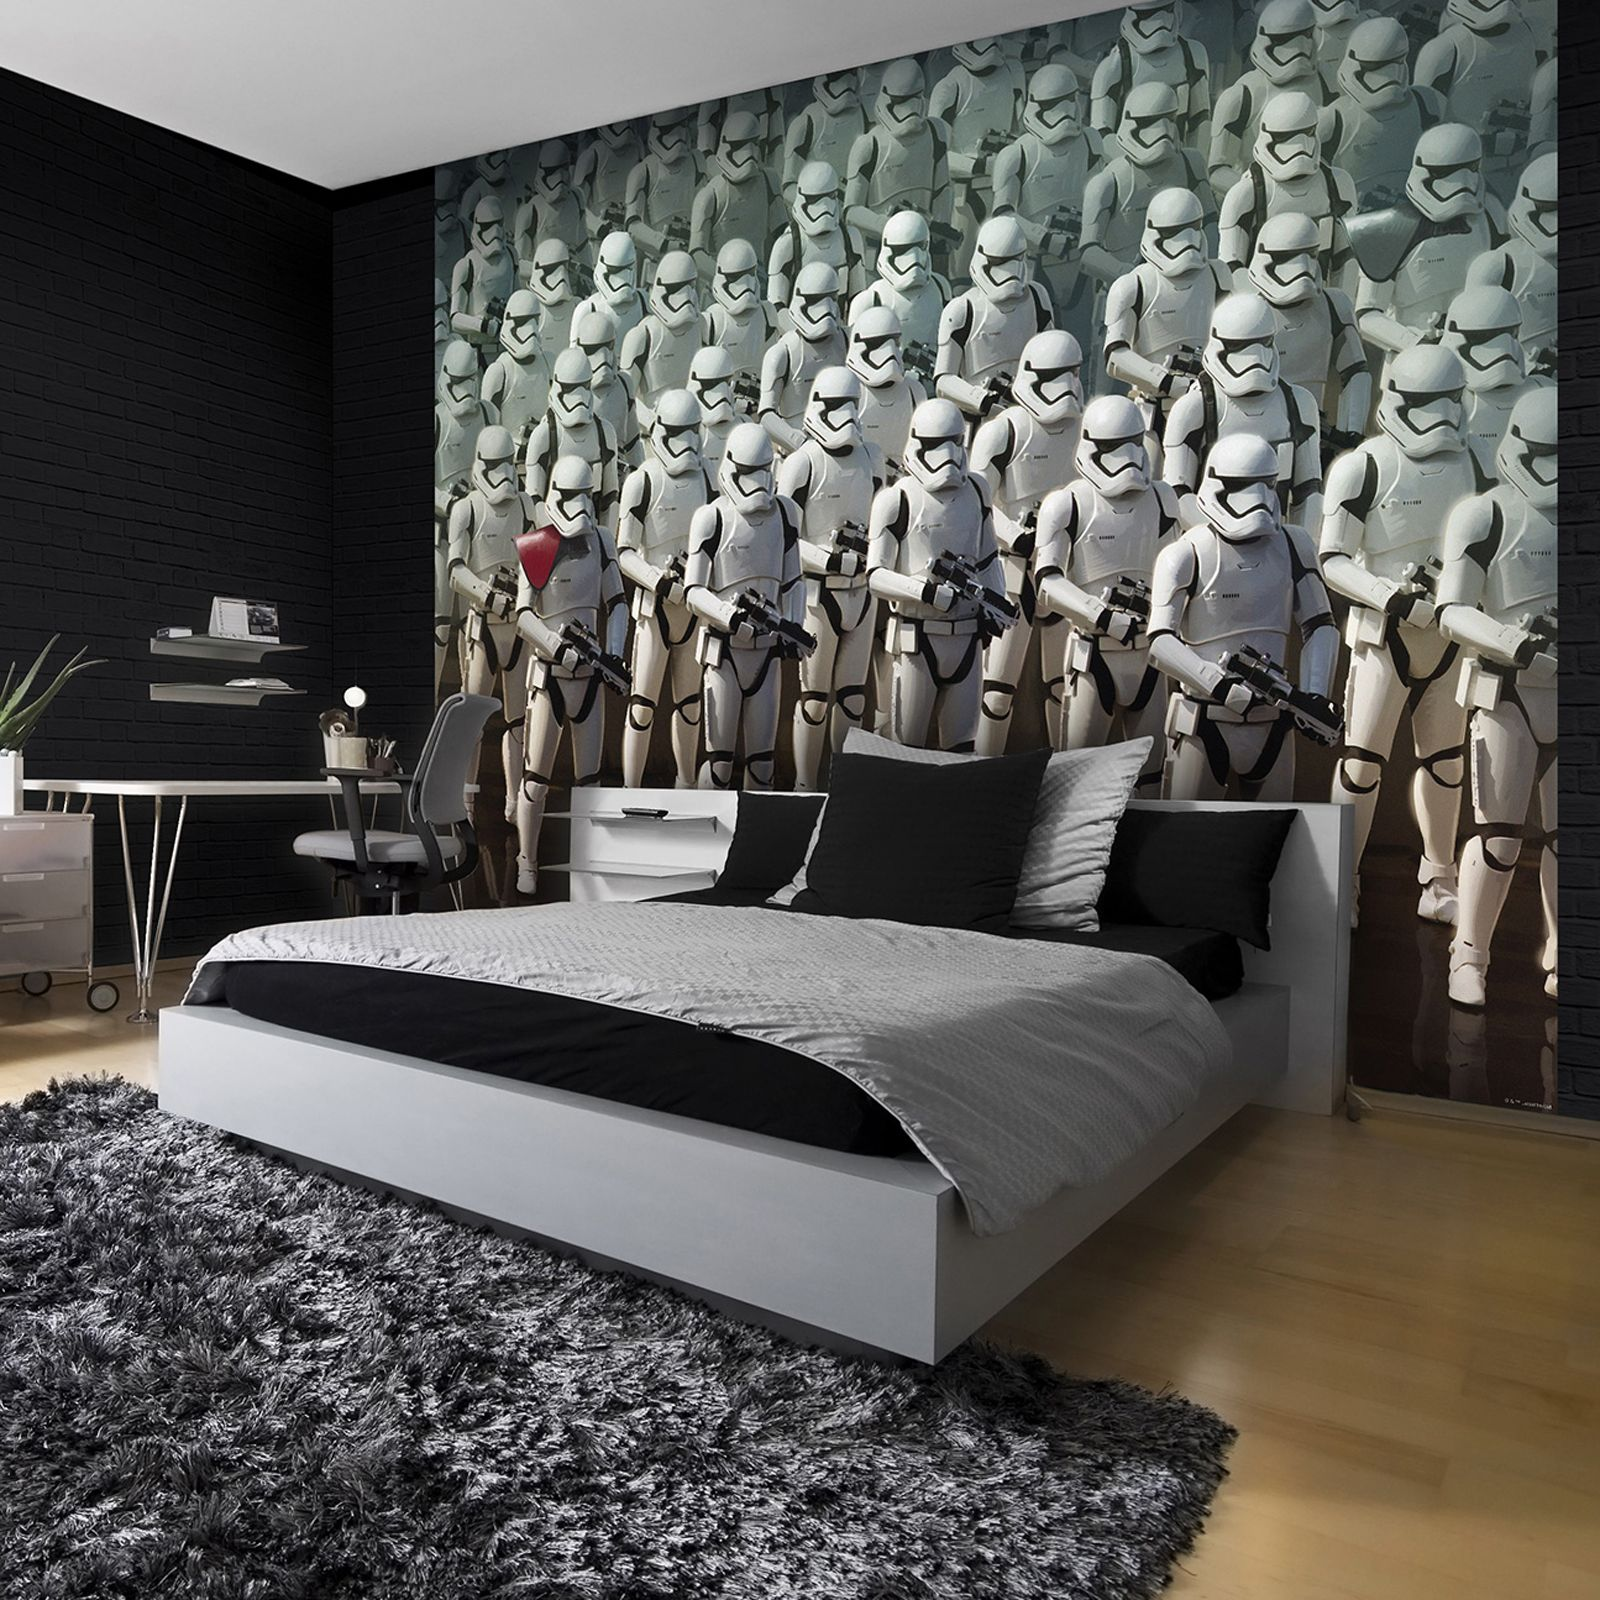 Star wars stormtrooper wall mural 254 x 184cm ebay for Boys wall mural